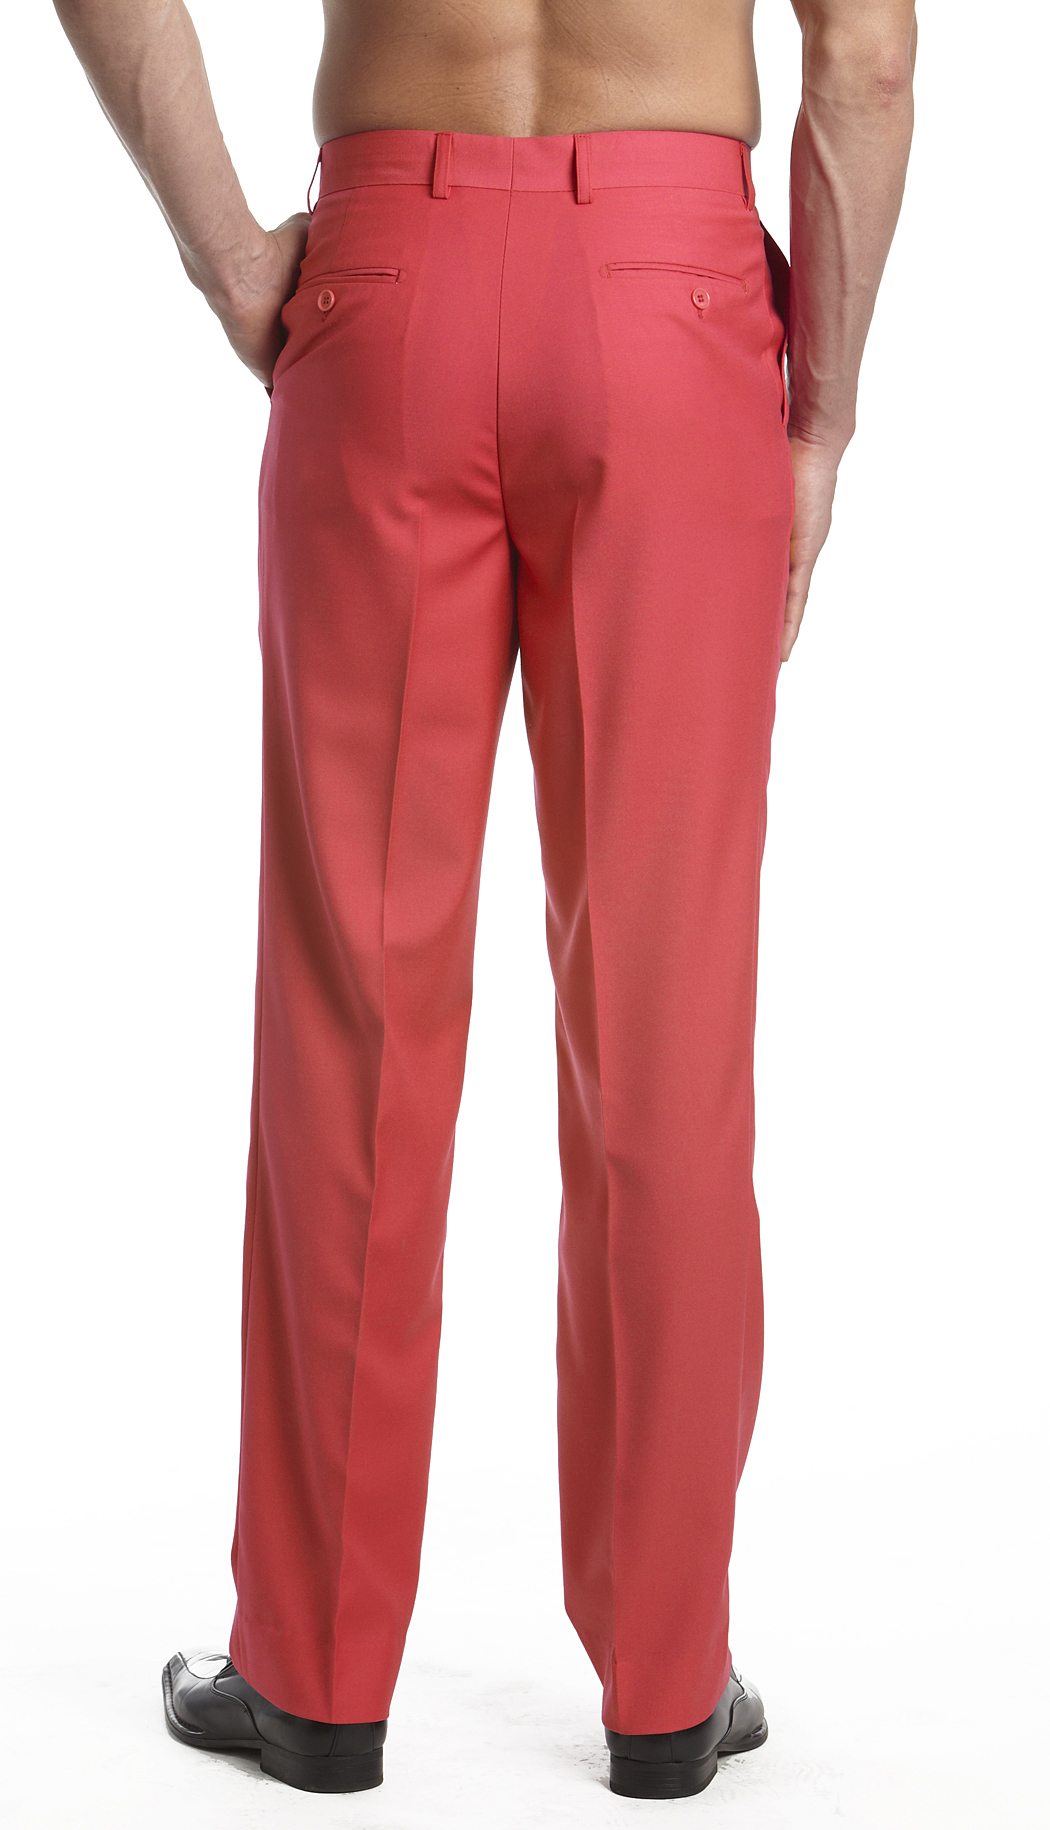 CONCITOR Men's Dress Pants Trousers Flat Front Slacks Solid ...